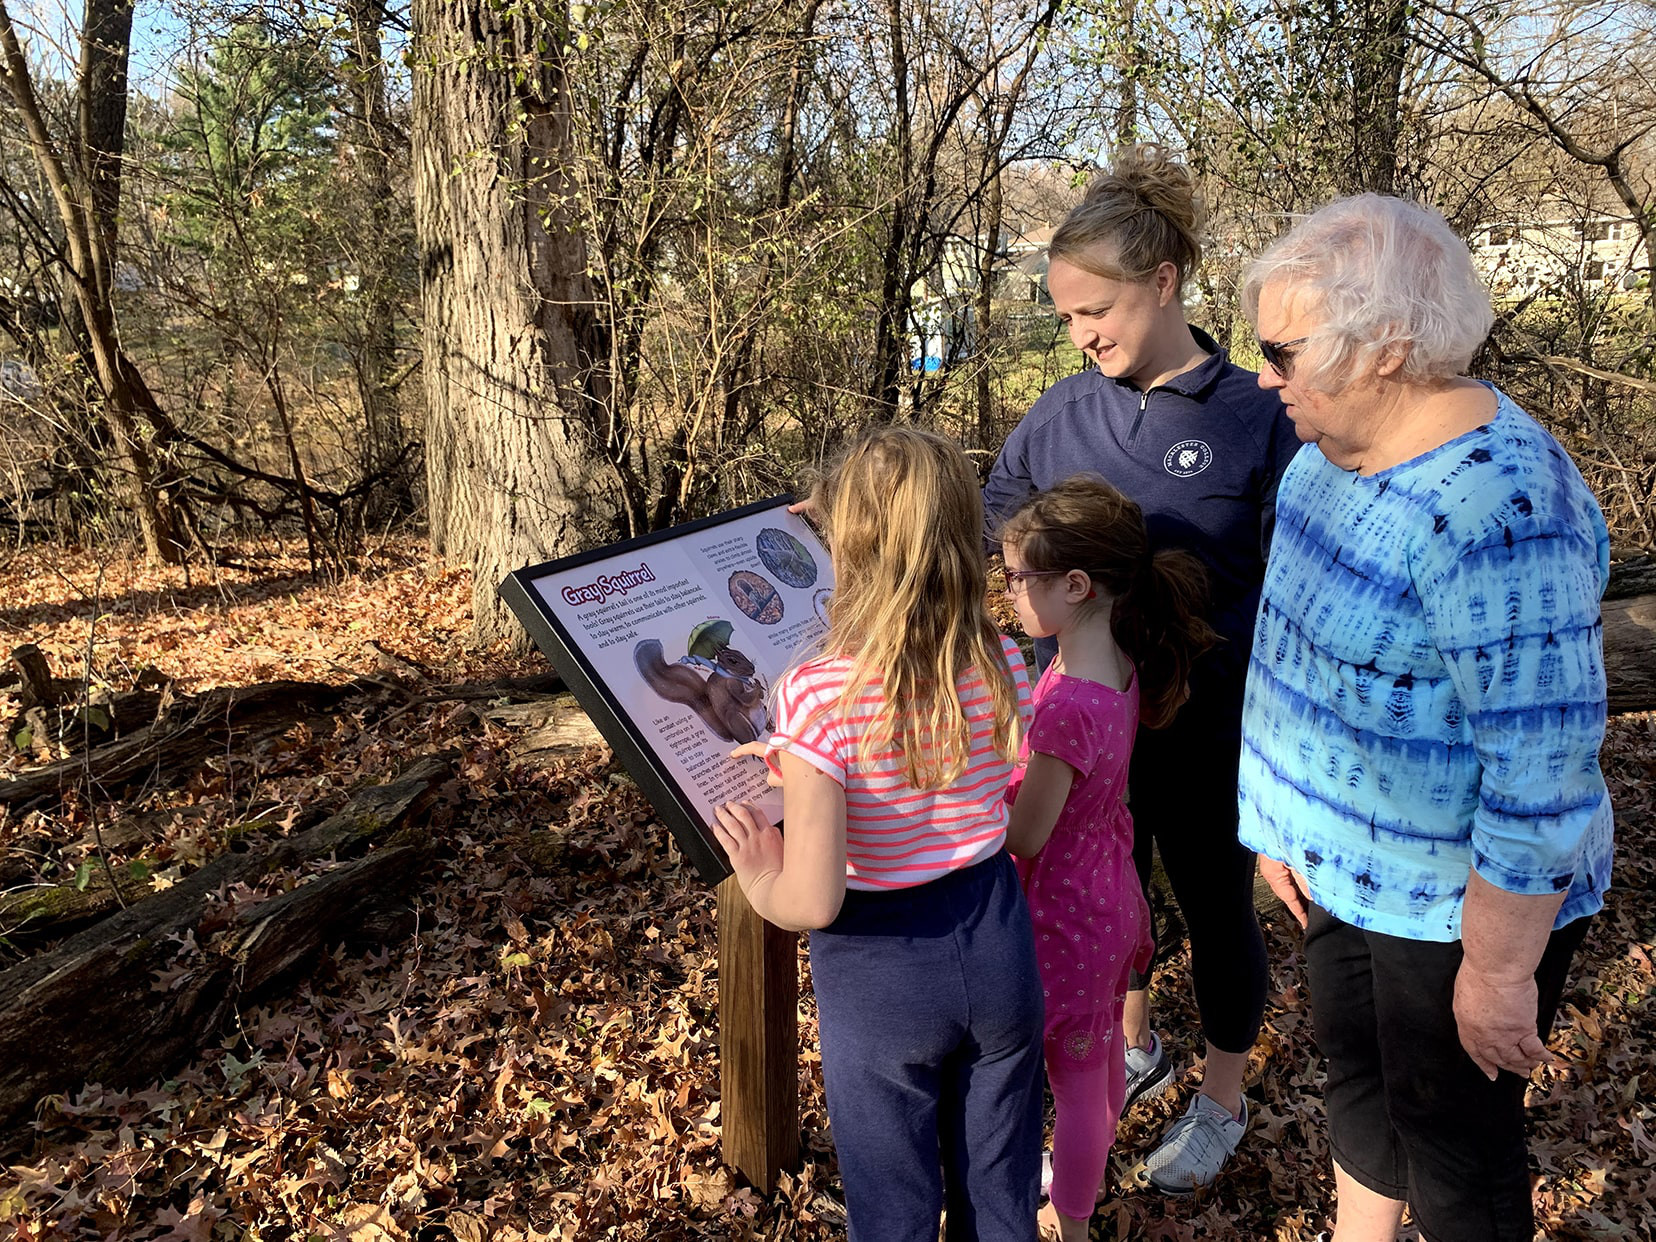 A family surrounding a sign in the woods including two young girls, a mother, and a grandmother.